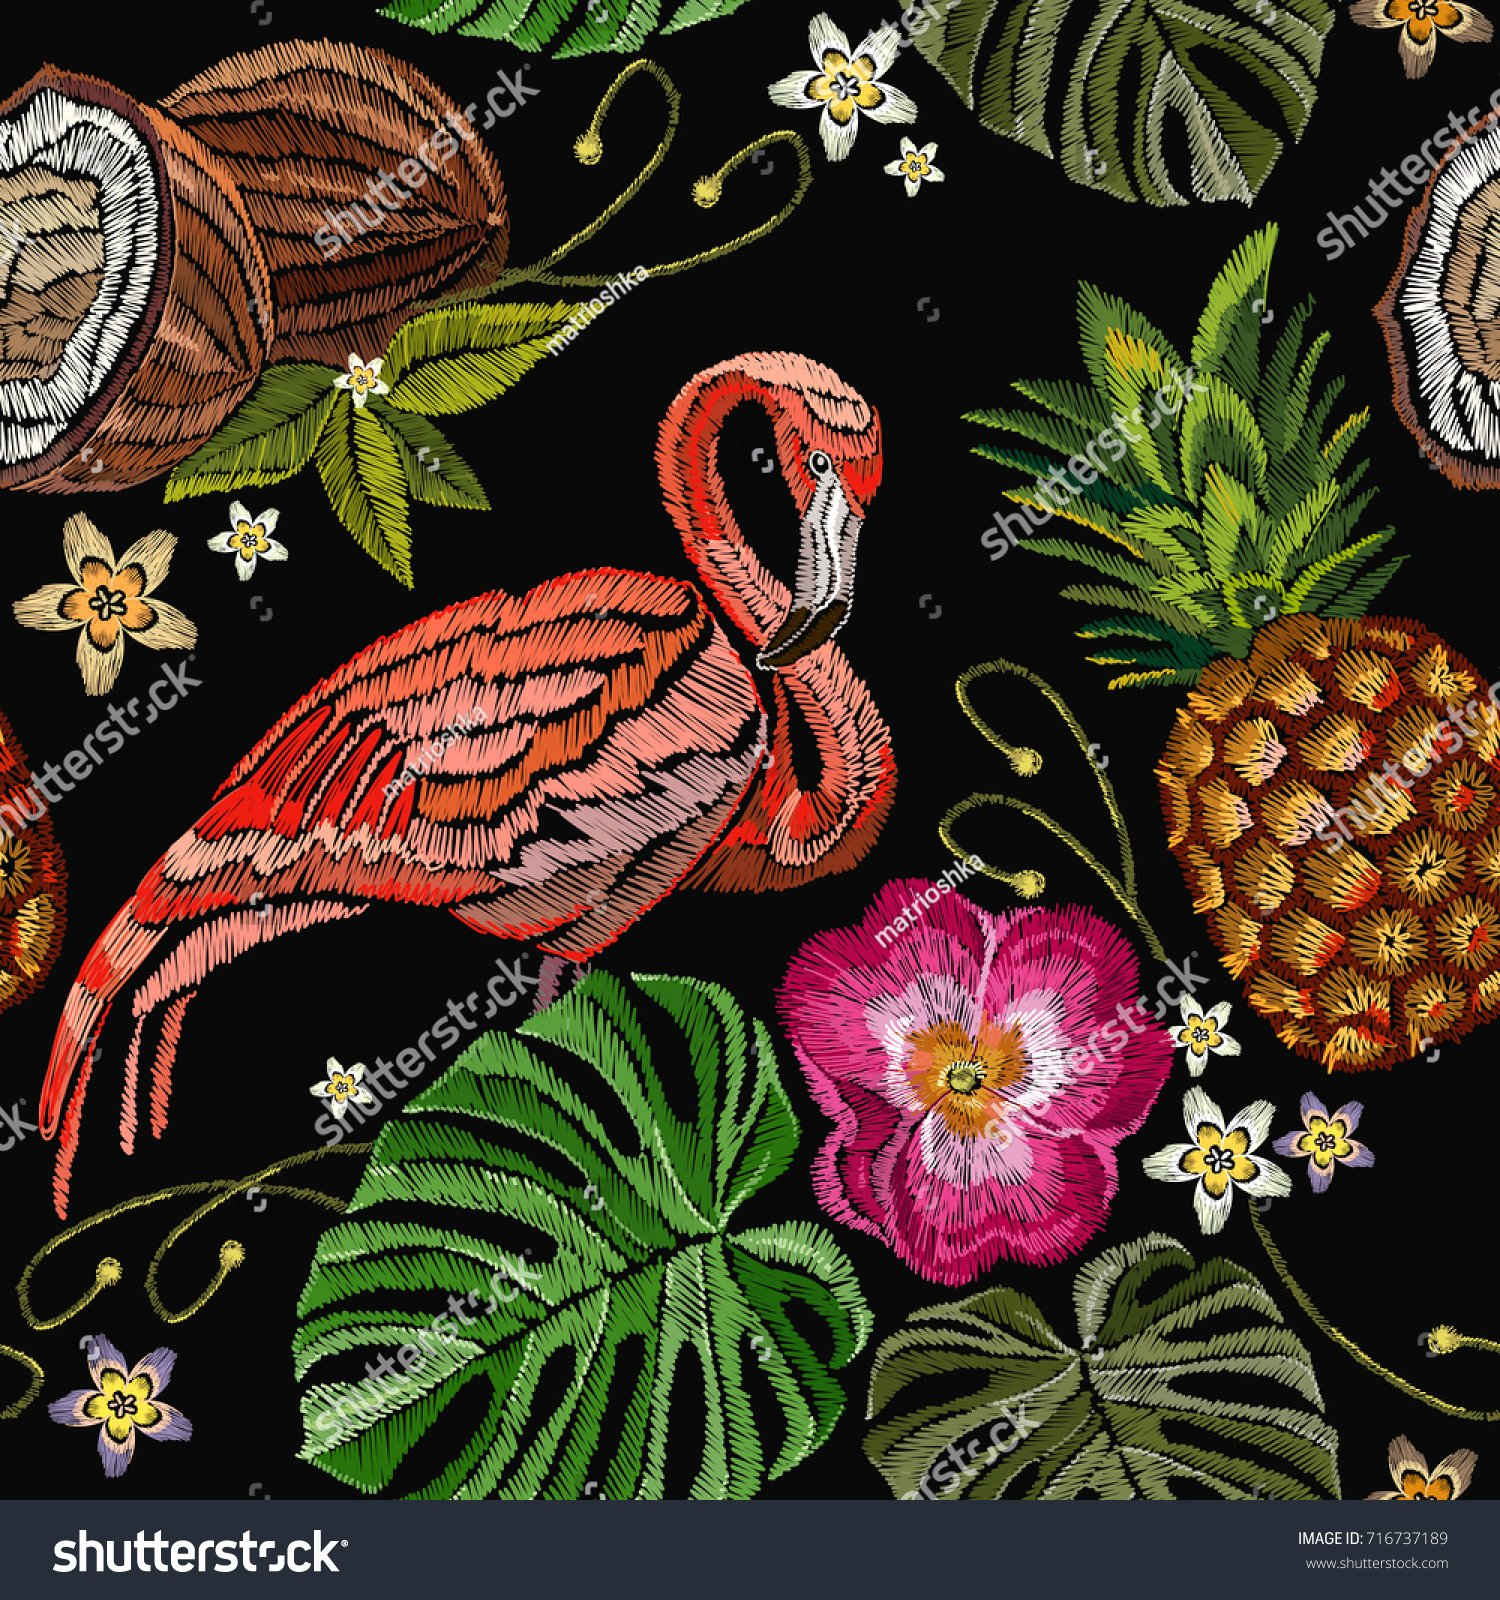 Pineapple Leaves Template Beautiful Embroidery Flamingo Palm Tree Leaves Pineapple Stock